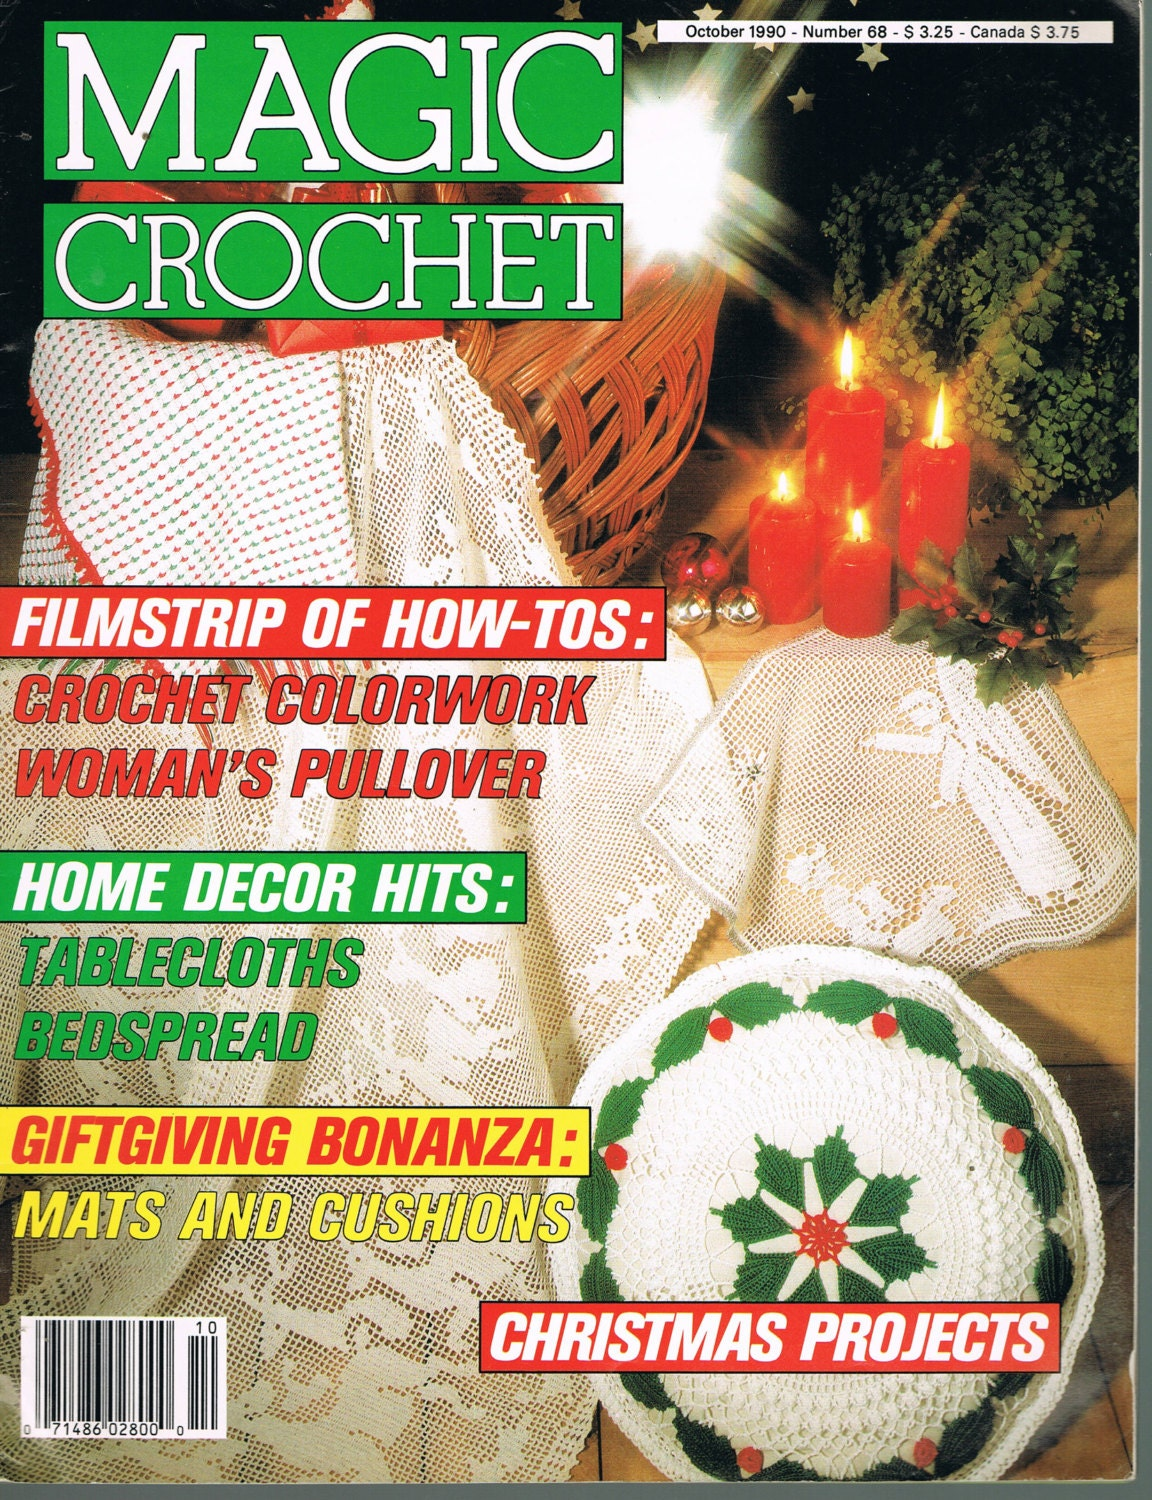 Magic Crochet Magazine : October 1990 Magic Crochet Magazine Doily by BusyBeaverBoutique